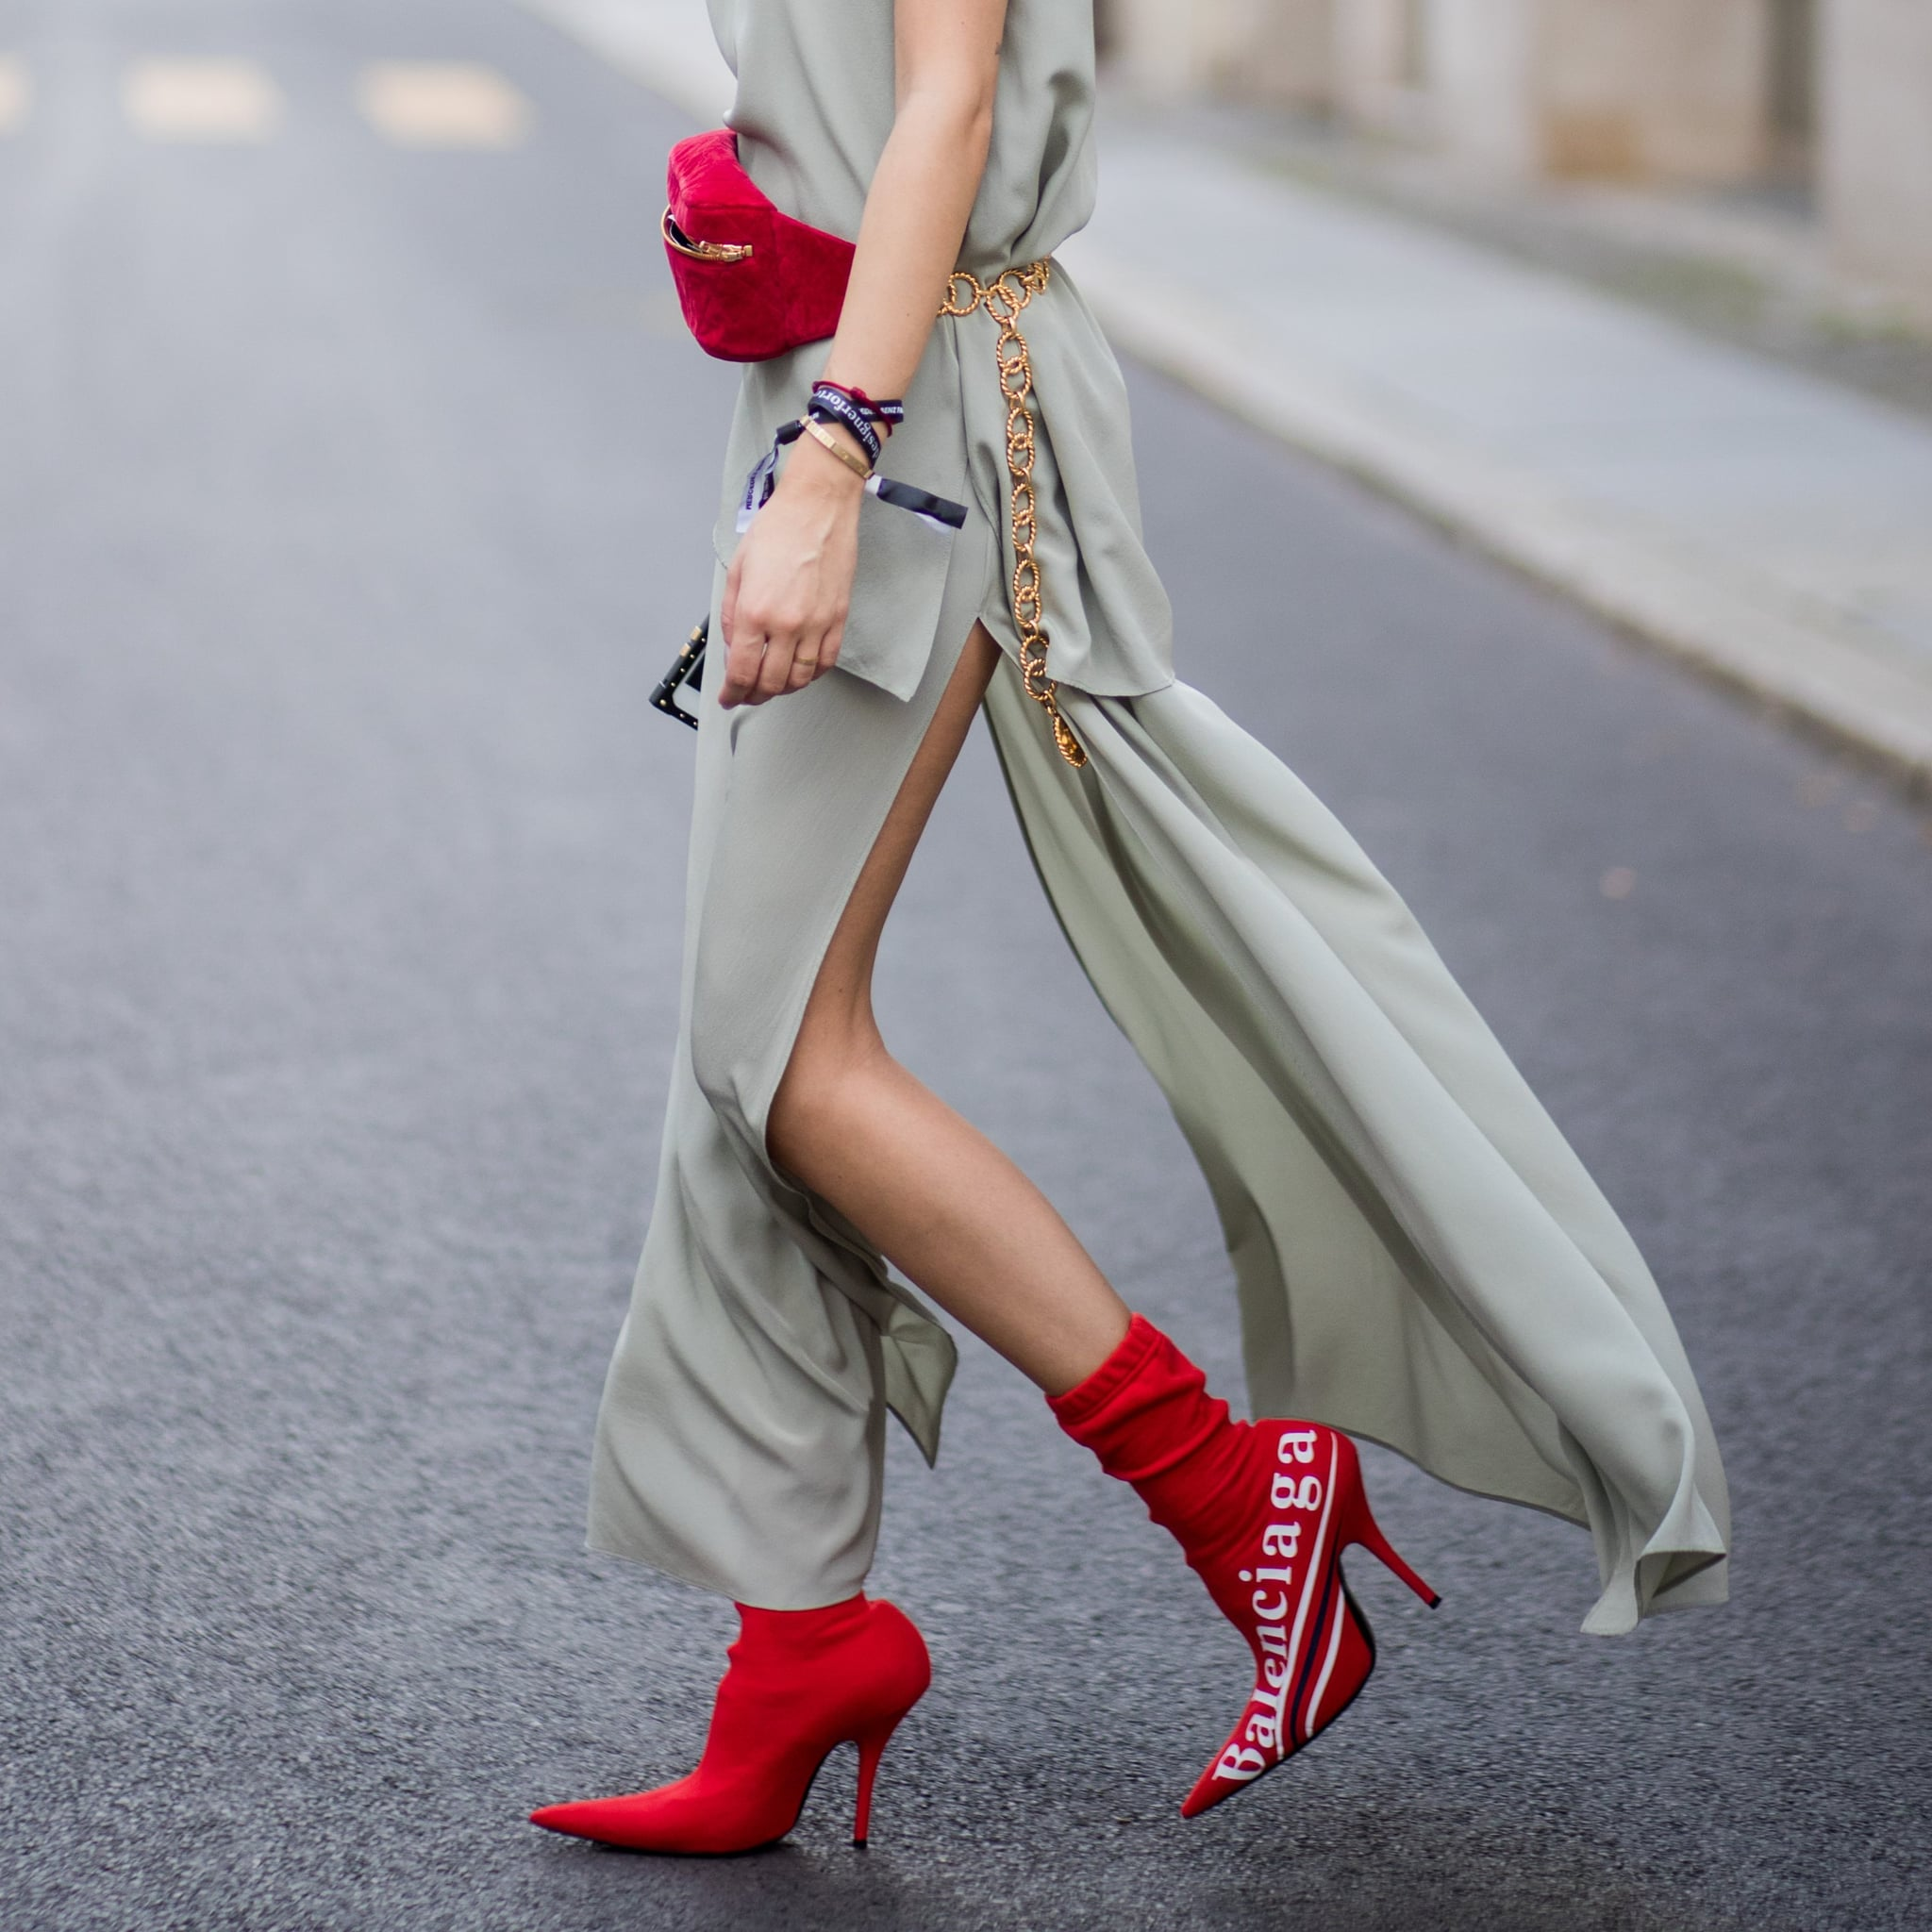 Fashion style This Naked Shoe Trend Is the Ultimate Leg Lengthener for lady